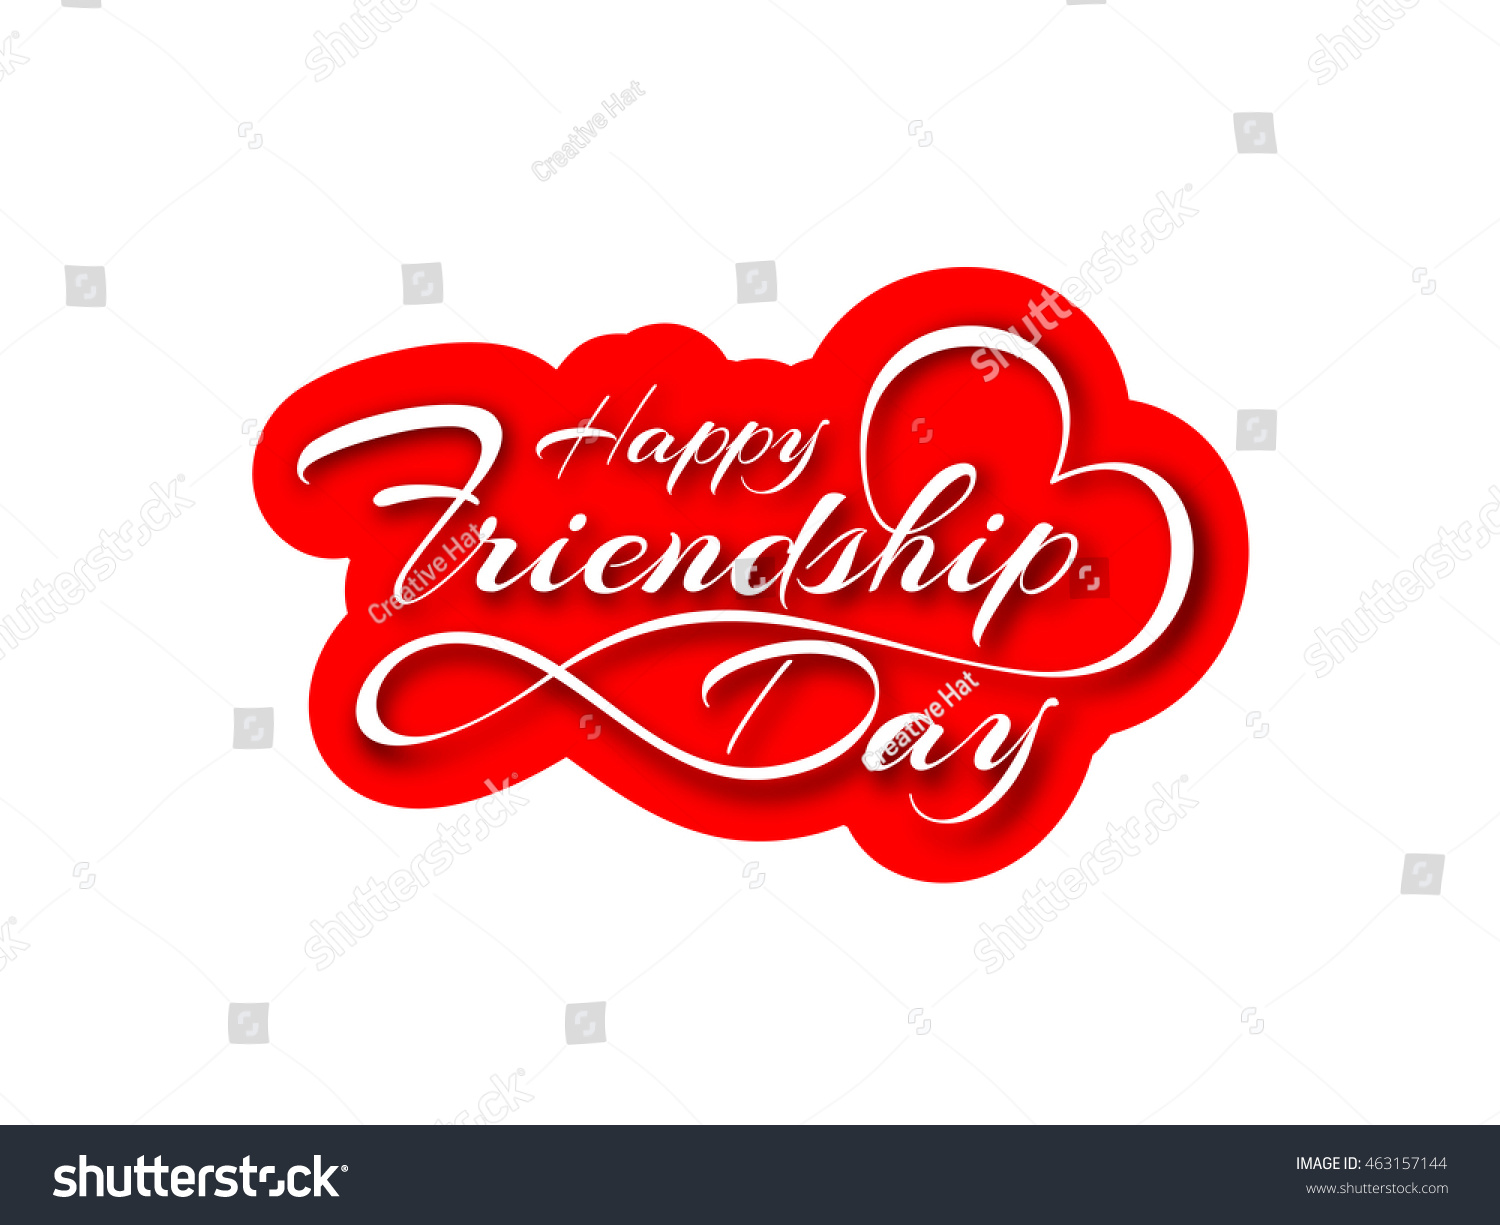 Happy Friendship Day Greeting Card Stock Vector Royalty Free